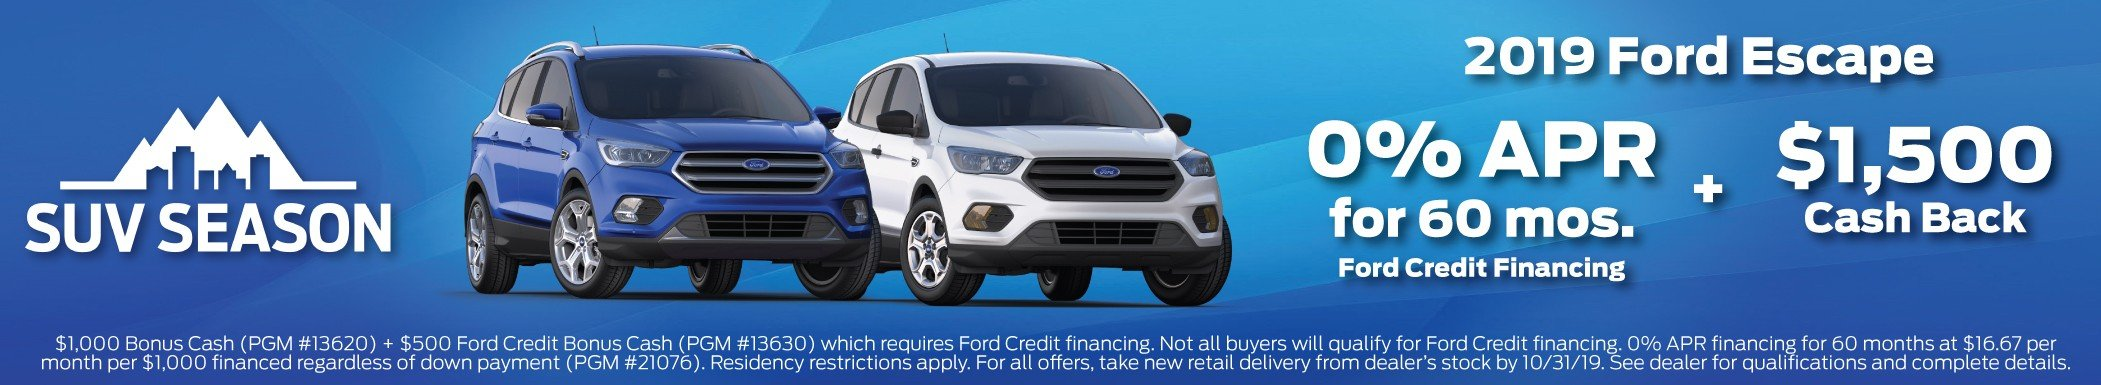 2019 Ford Escape Incentive 10-31-2019